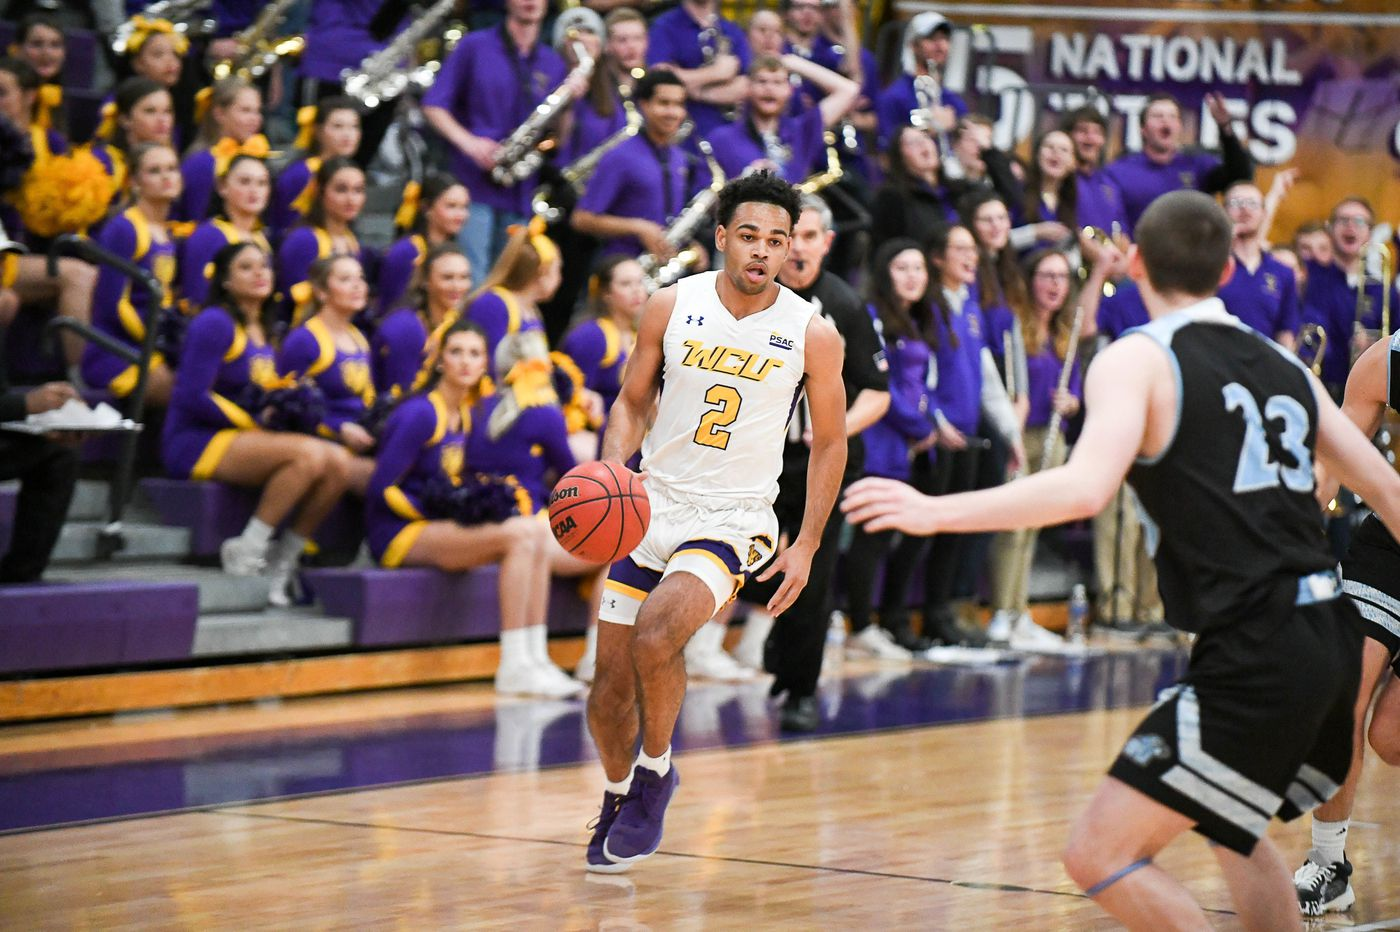 West Chester's Aussie from Abington is leading NCAA Division II freshmen in scoring | Mike Jensen